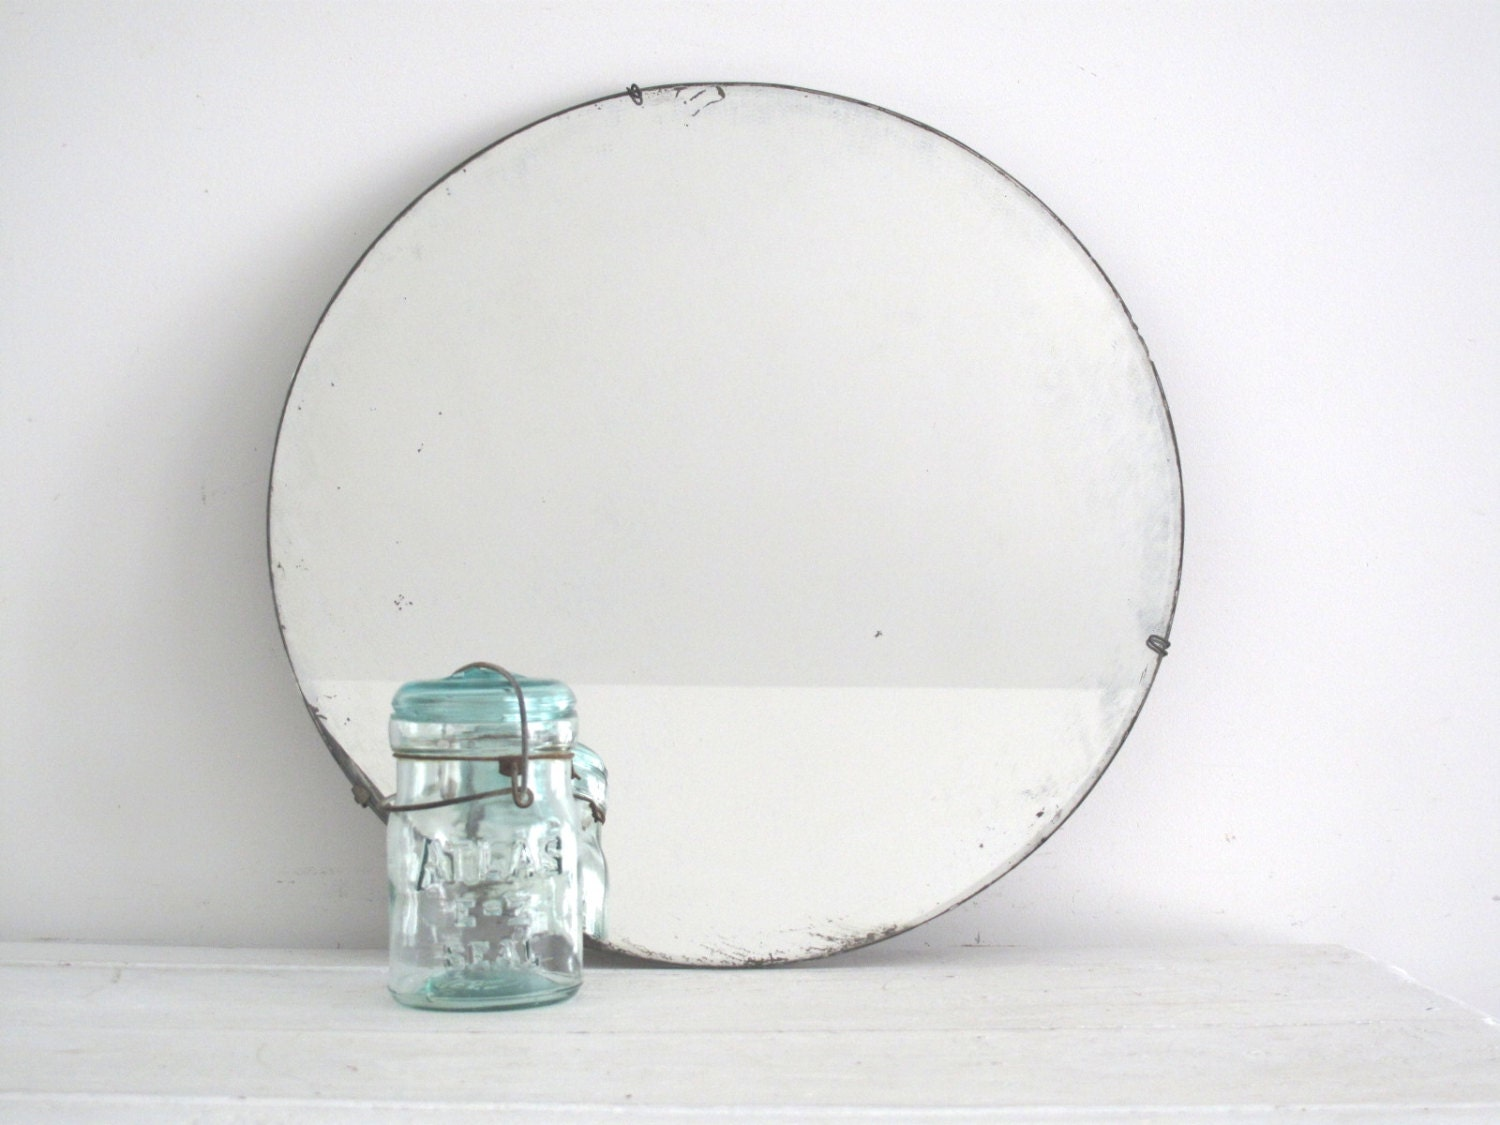 Chrome Art Deco Wall Light For Bathroom Mirrors Or Walls: Round Wall Mirror Art Deco Round Mirror With By